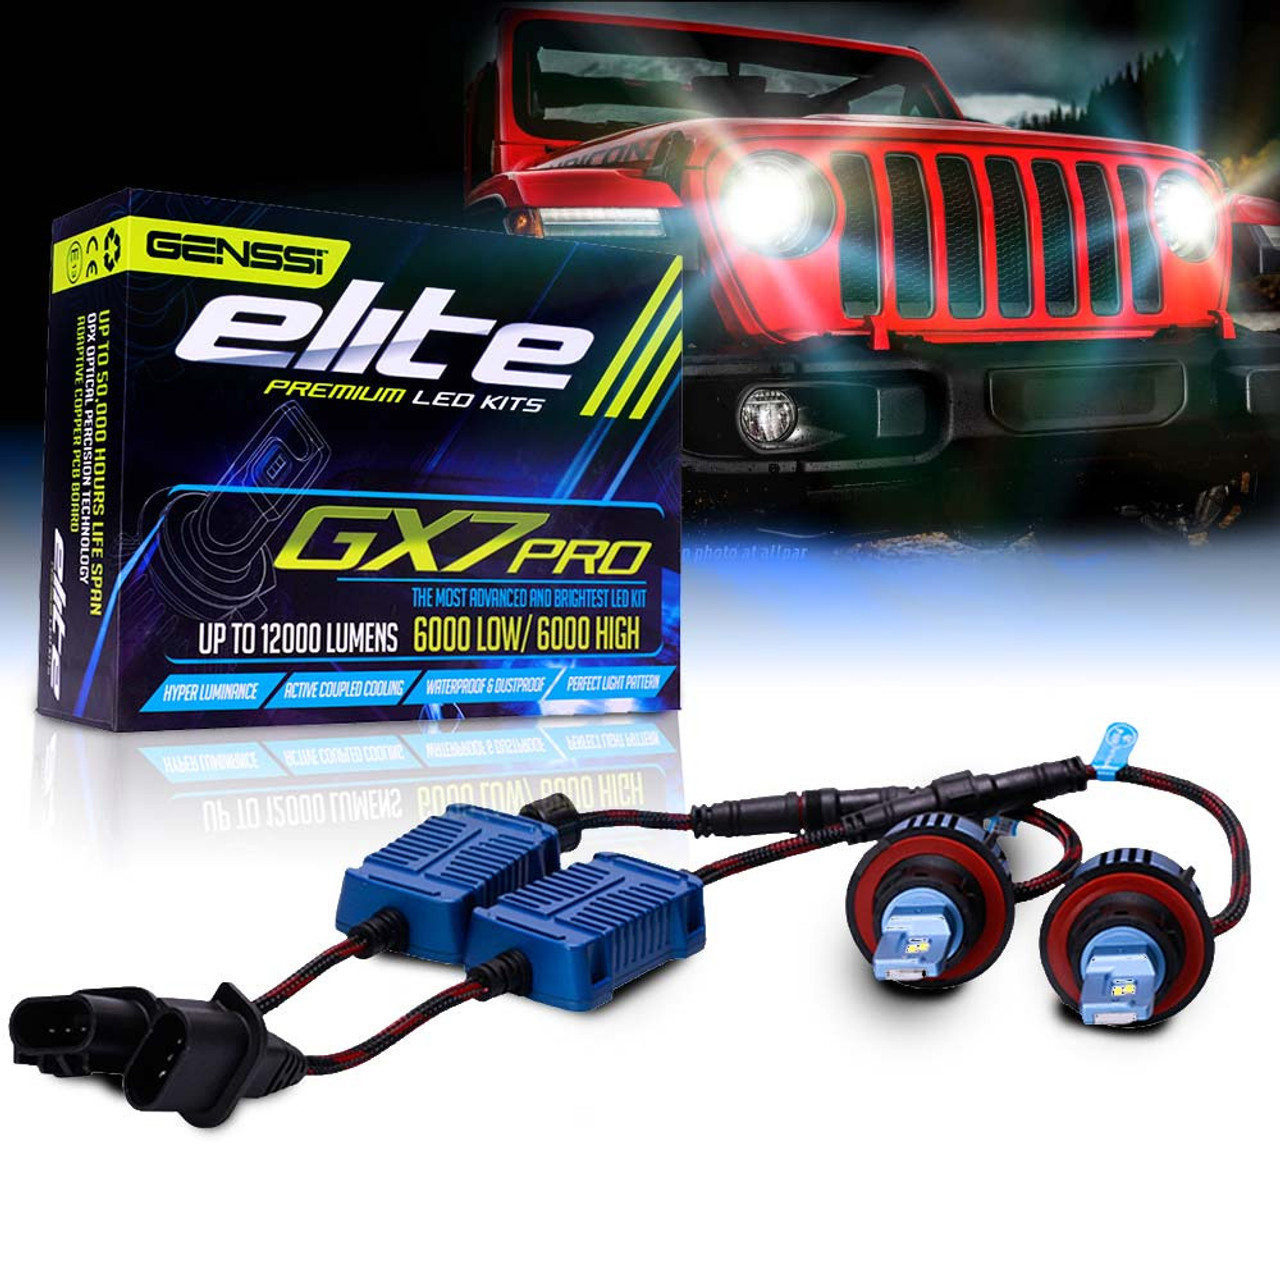 Led Headlight Conversion Kit Gx7 Pro For Jeep Wrangler Jl 2018 Up White Sahara Lifted With Tire Carrier And Tail Lights